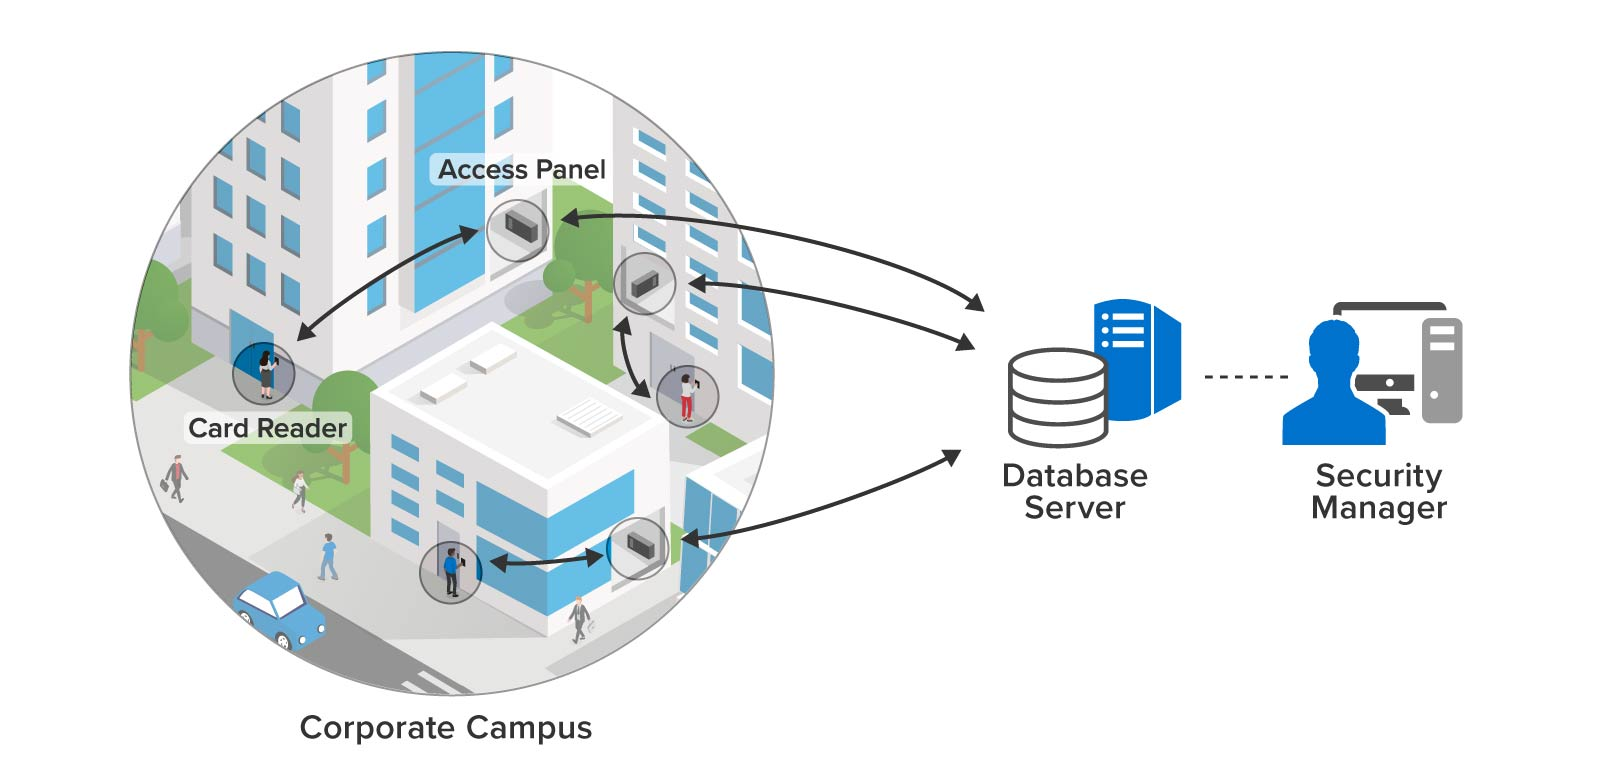 Key card access control on a corporate campus using a database